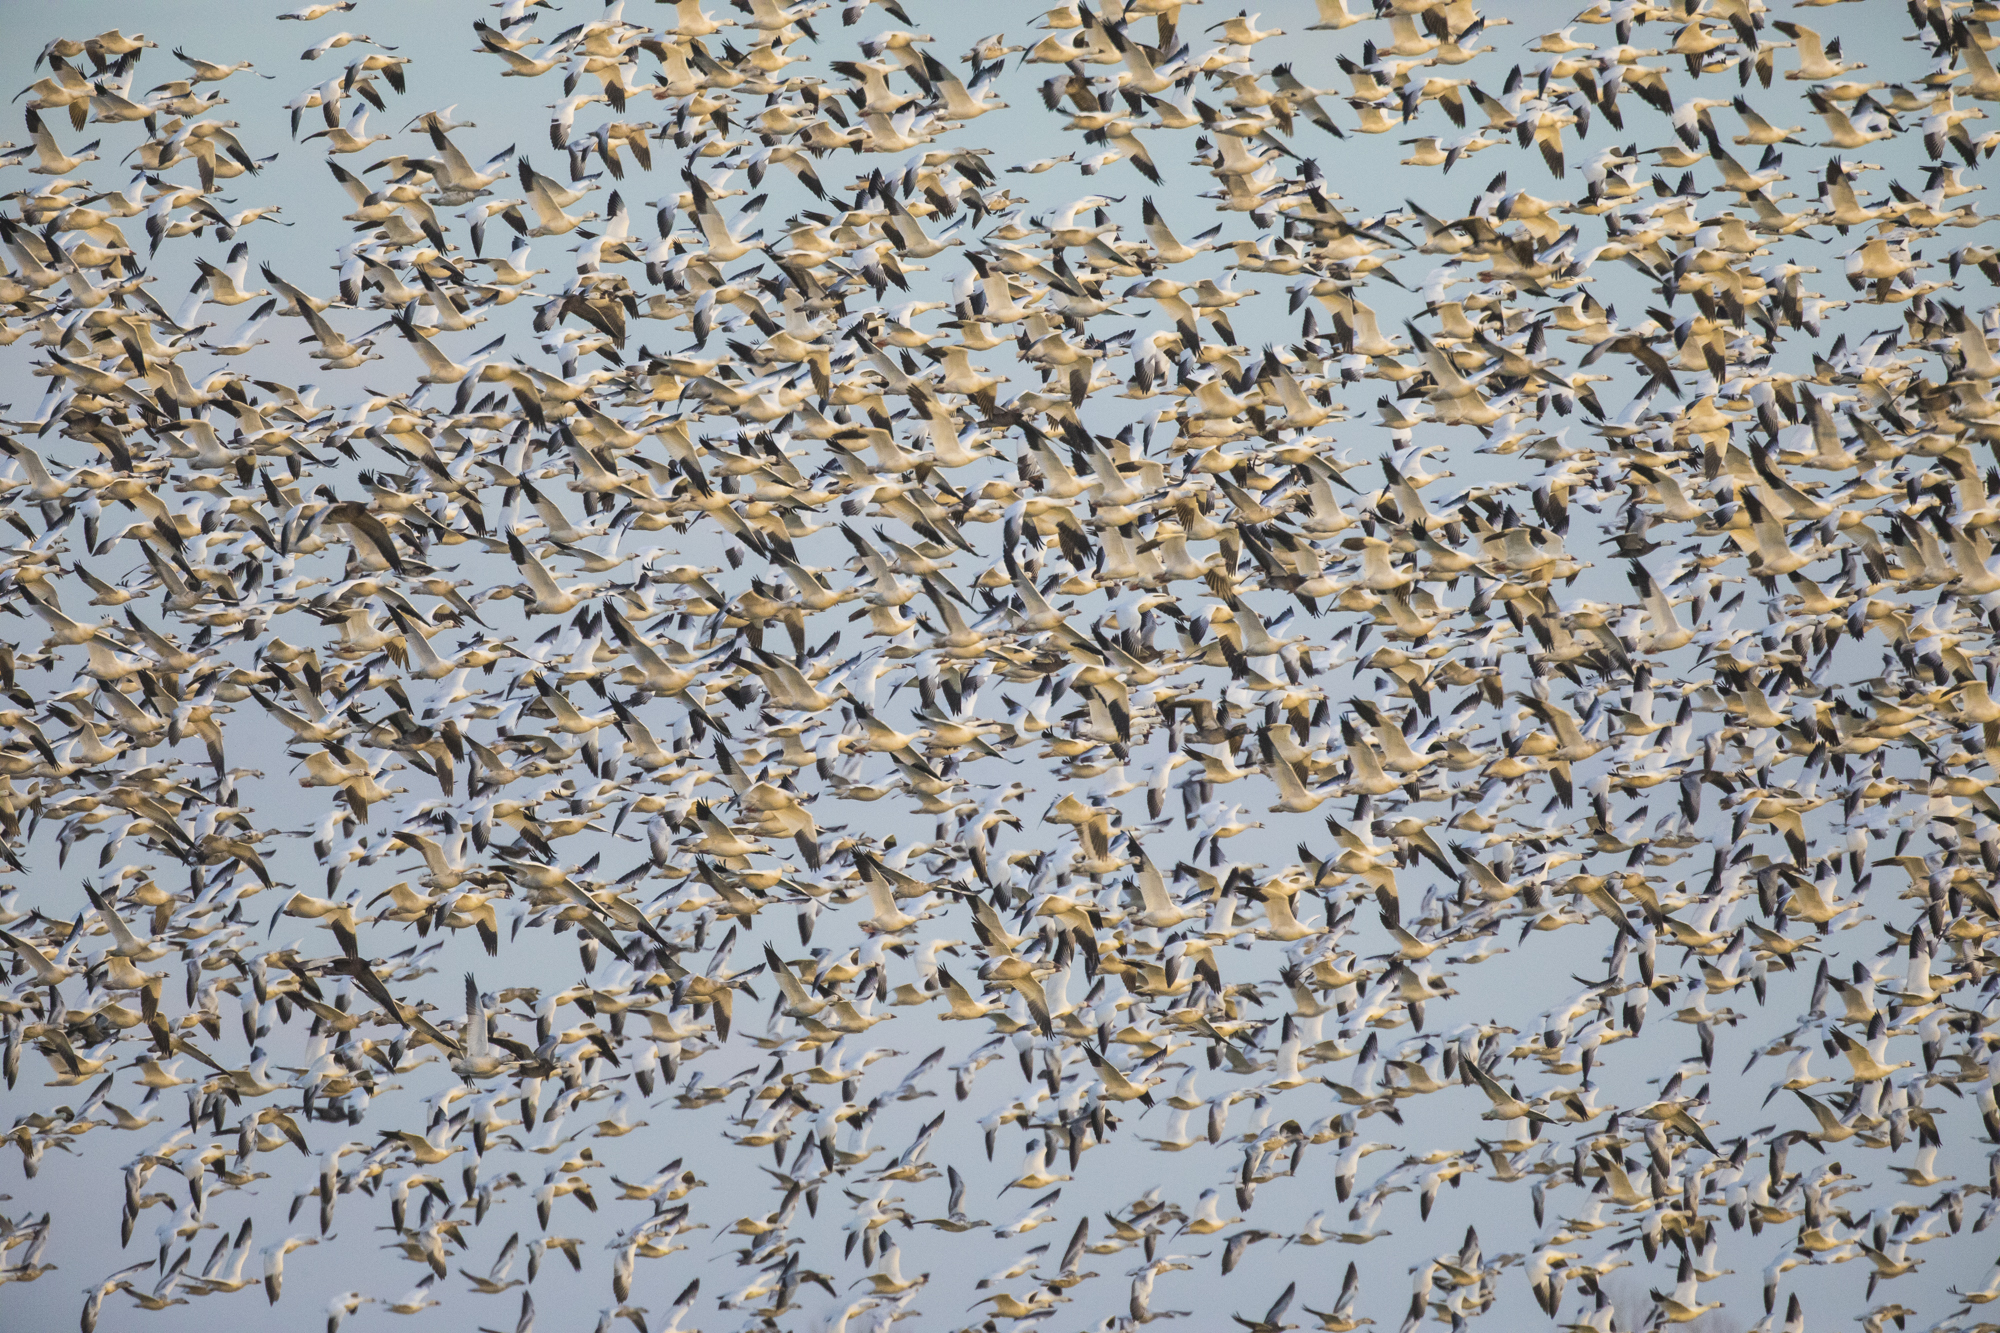 Snow geese take off afer jet flyby